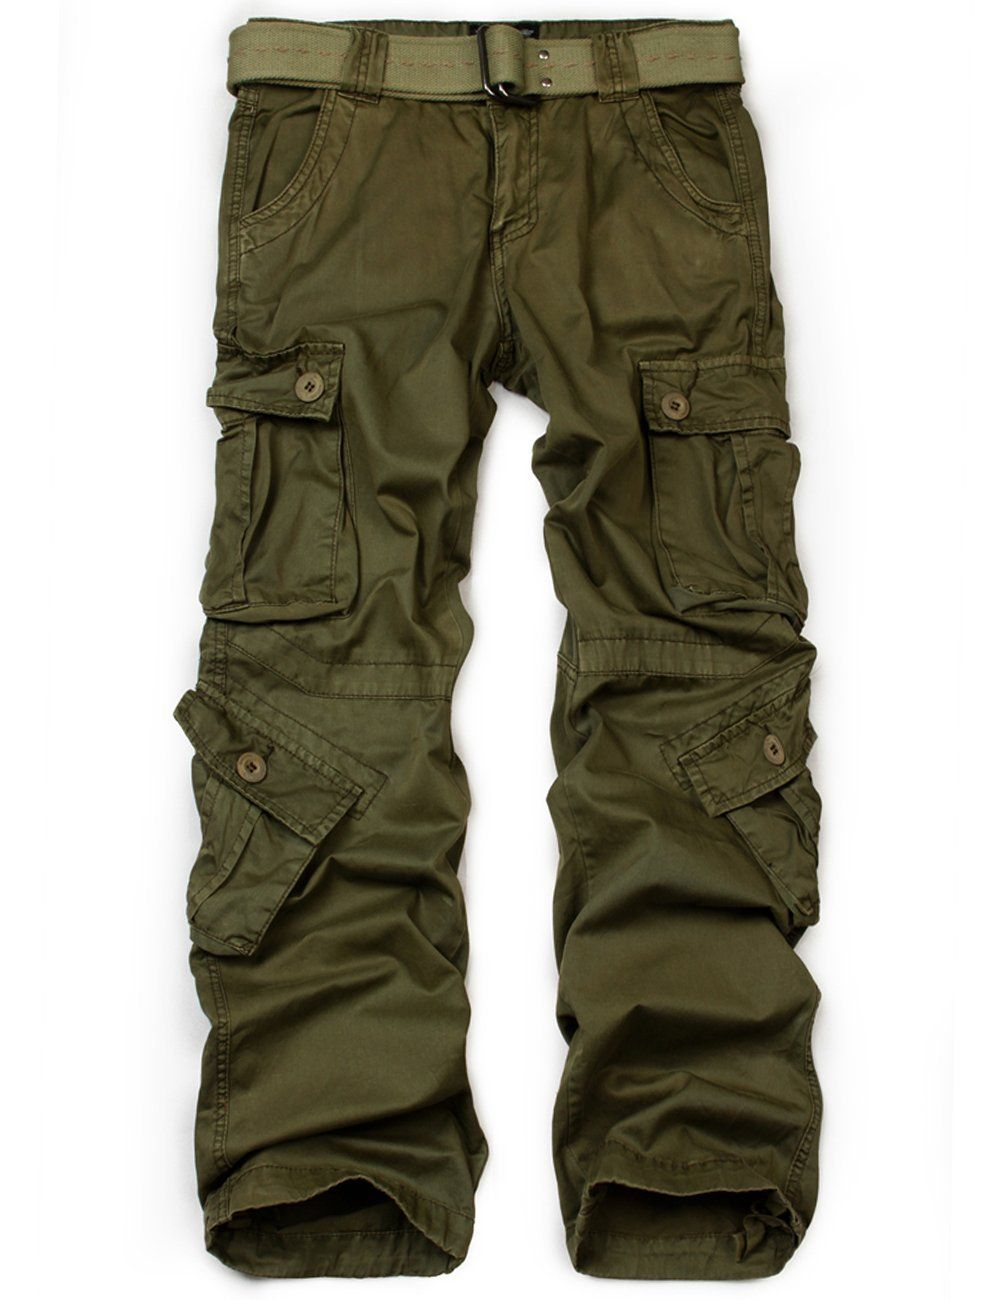 Match Men's Military Cargo Pants Plus Size Multi-pockets Utility Cargos # 3357 (Label size 32 (US 30), 3316 Max) at Amazon Men's Clothing store:  Casual Pants